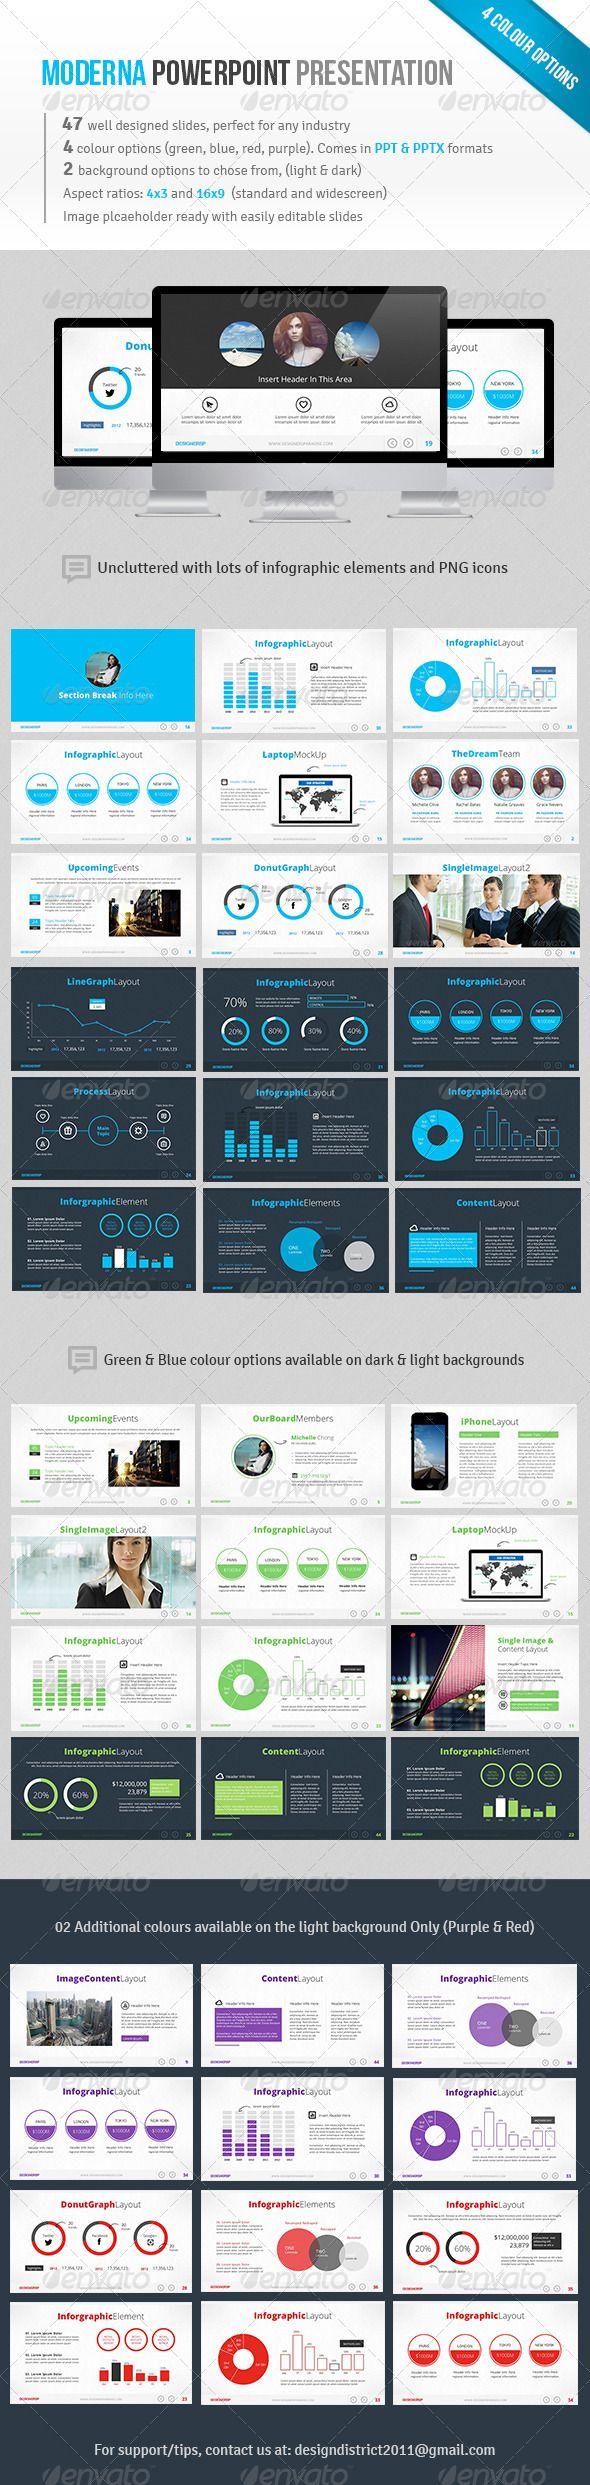 Moderna Powerpoint - Business Powerpoint Templates